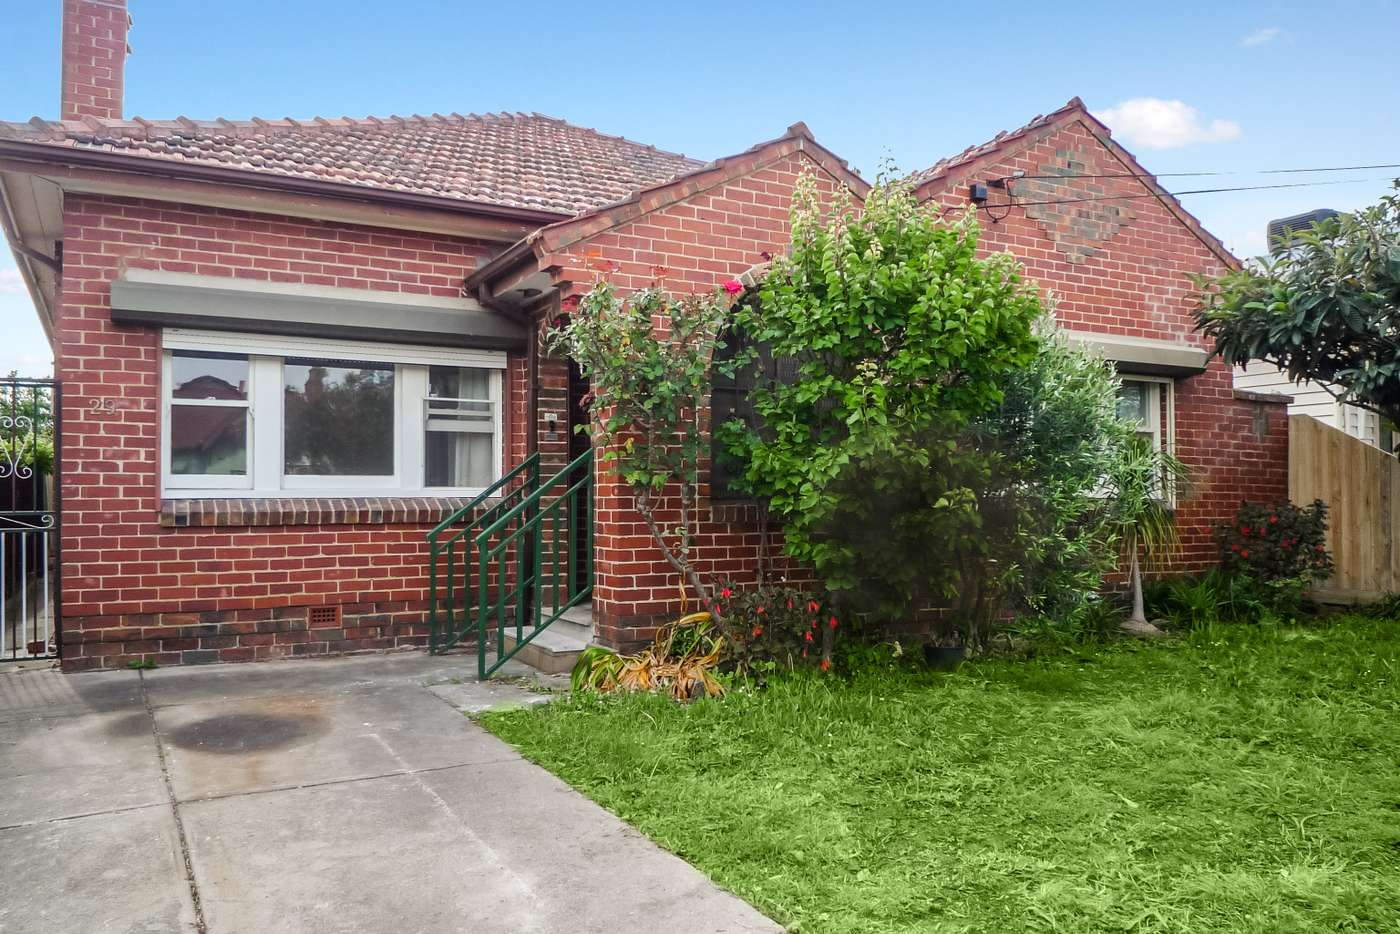 Main view of Homely house listing, 29 Nelson Street, Coburg VIC 3058